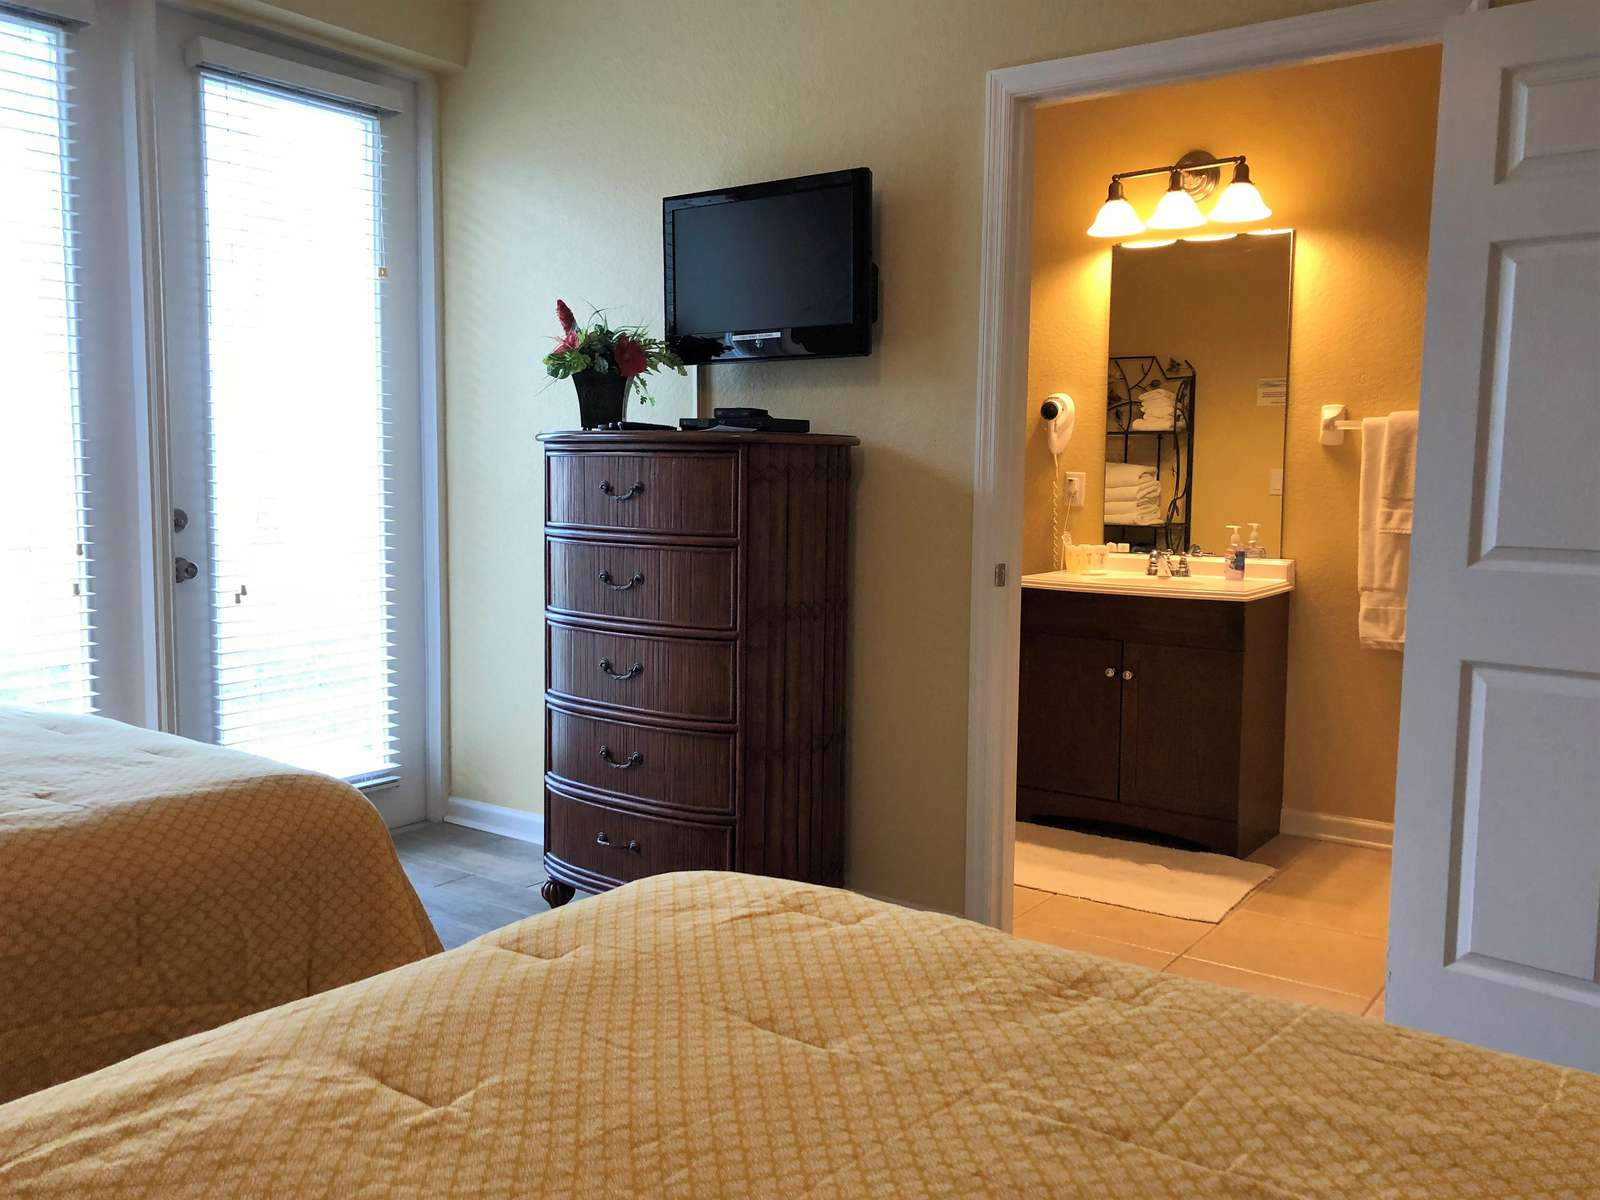 Flat screen TV and DVD player; en-suite bathroom first floor in background